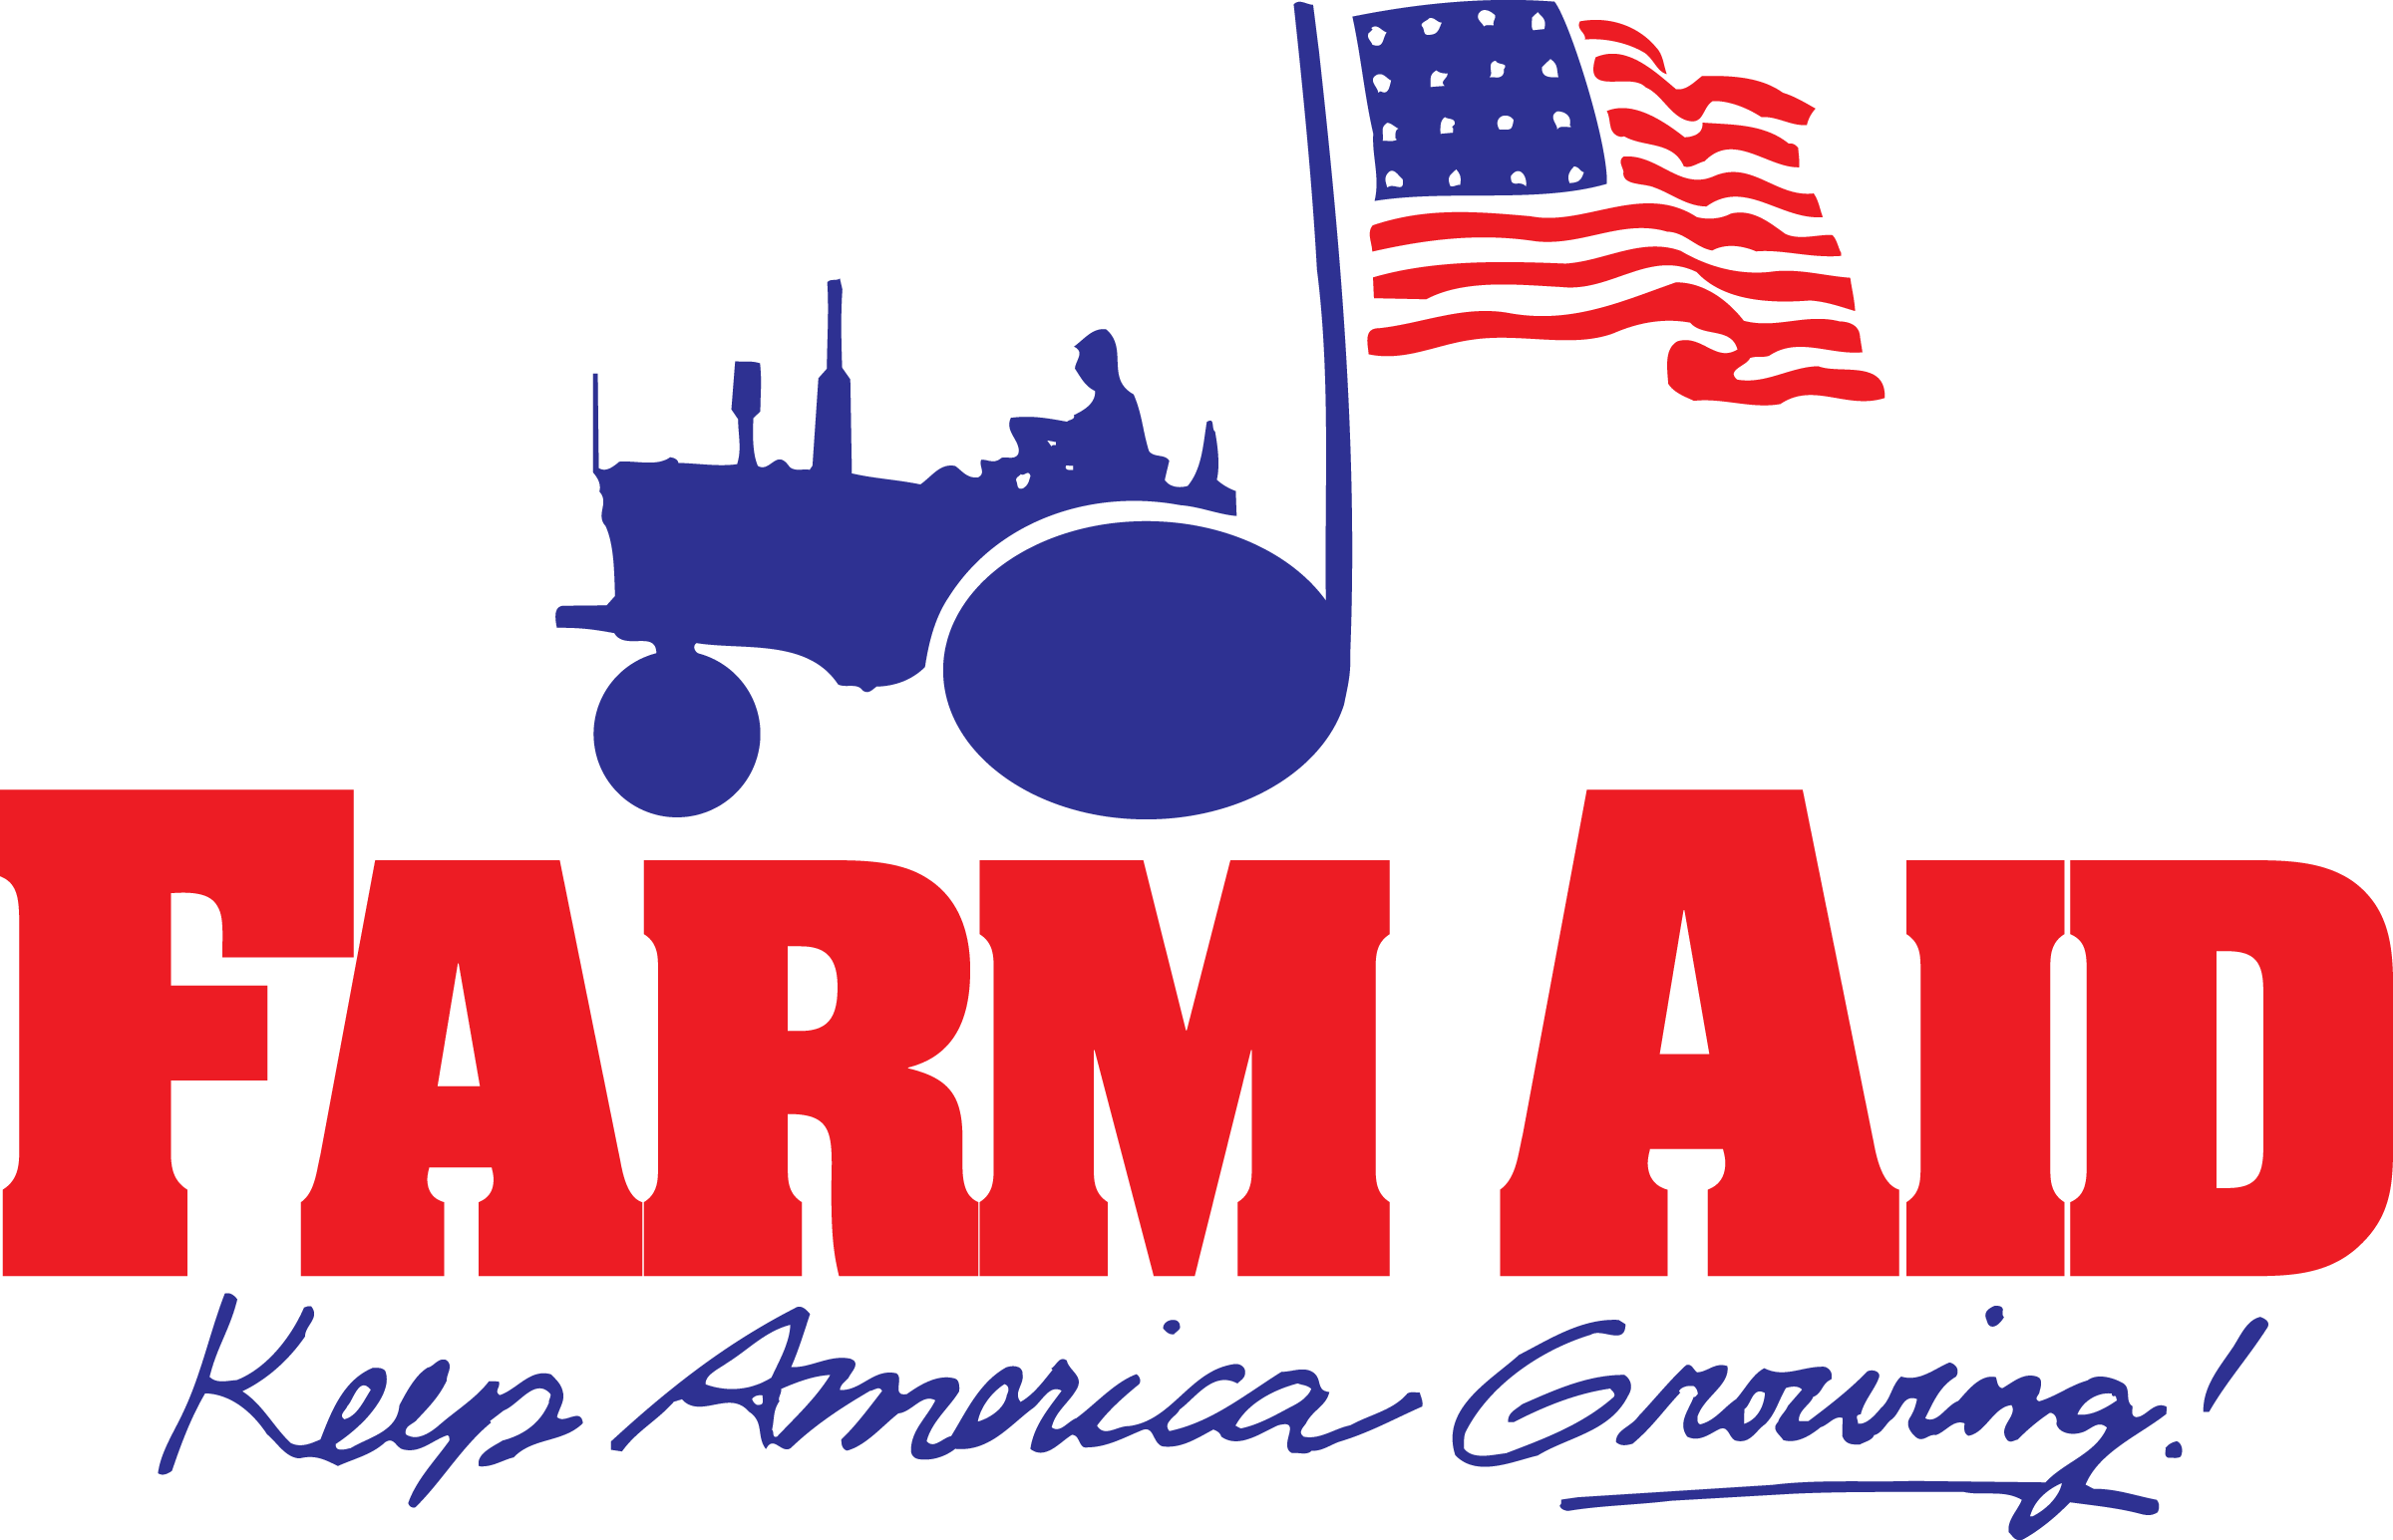 Farm Aid - Keep America Growing